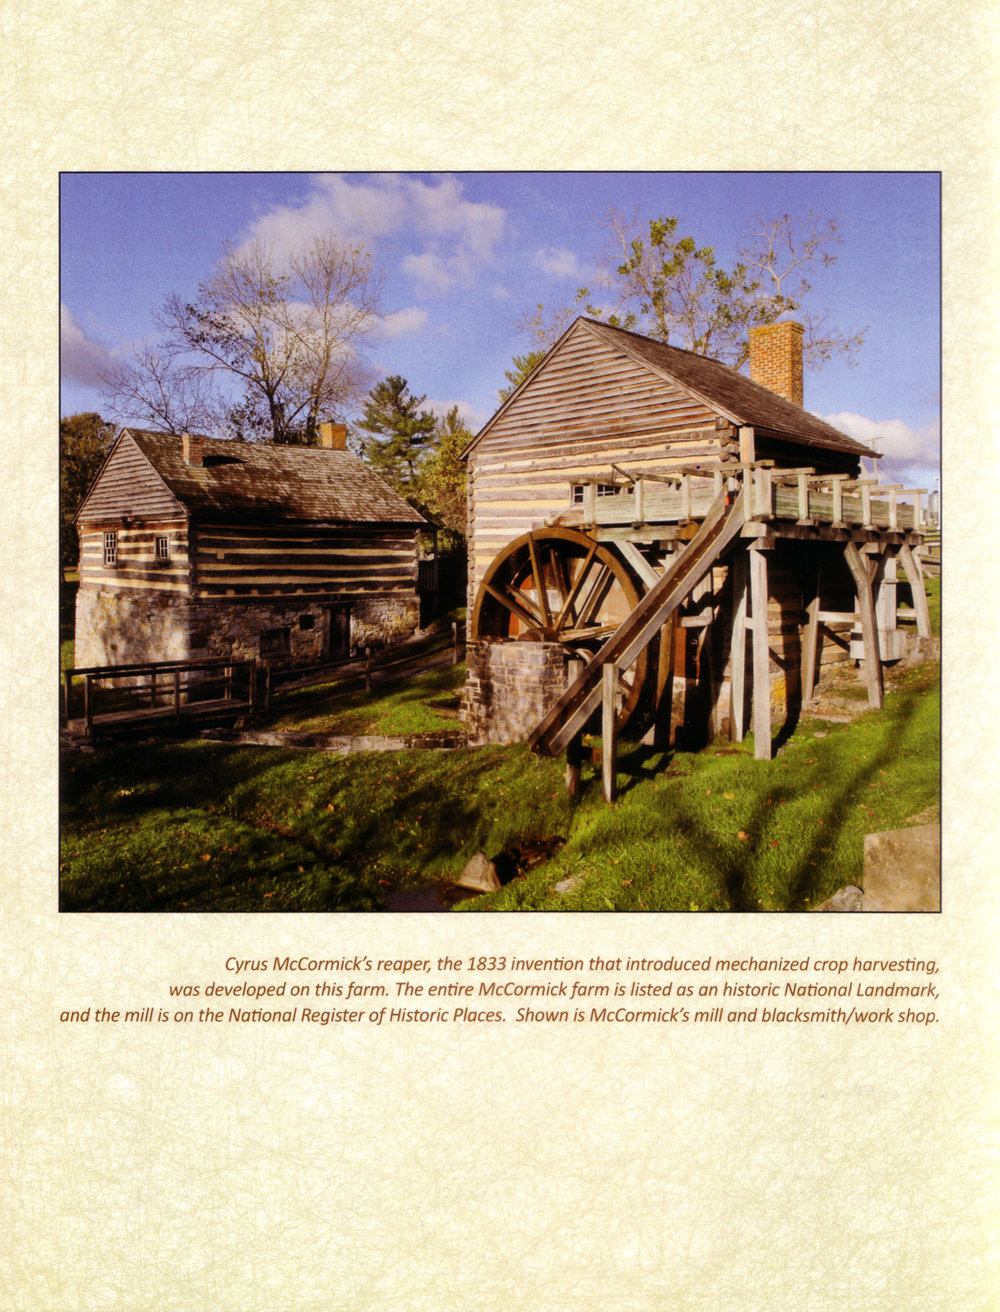 Cyrus McCormick's Farm, National Landmark